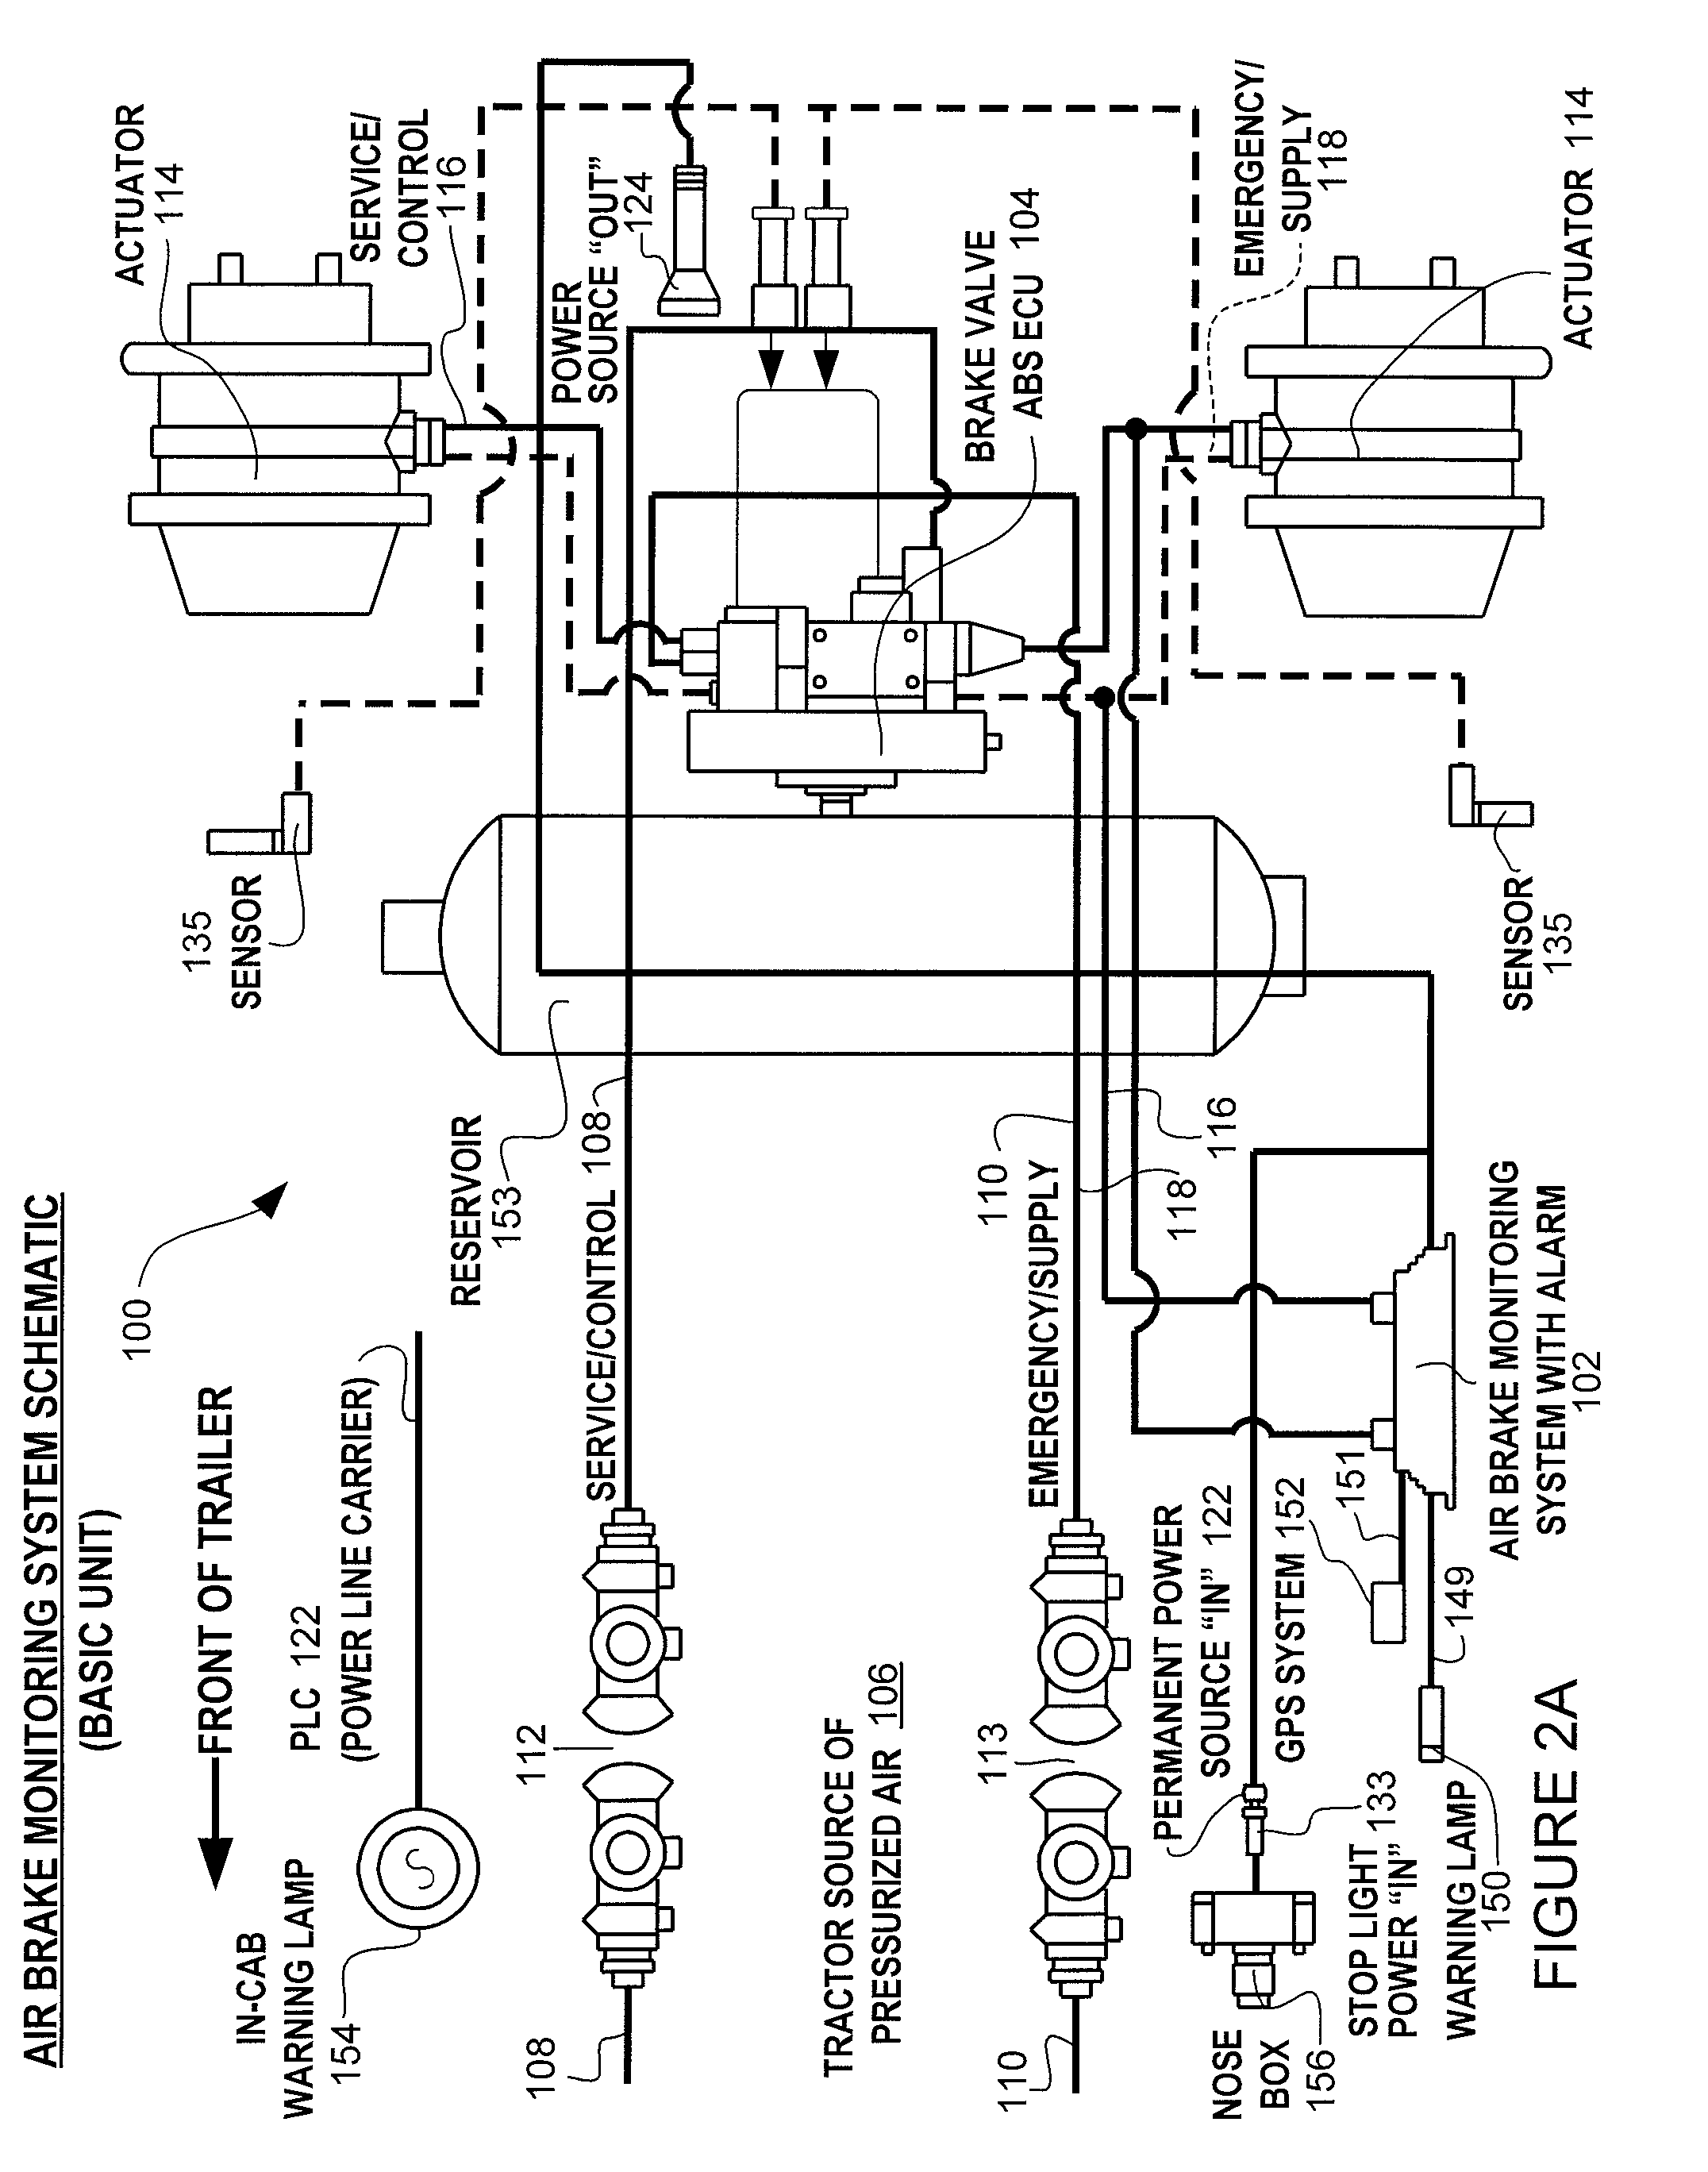 Cat 3406E ECM Wiring Diagram as well Part No Description Price Wabco Automotive U K N1003825 Wabco Abs further Wabco ABS Wiring System Diagram moreover Ford Explorer Fuse Box Diagram together with Bootstrap Reservoir Hydraulic Pressures. on wabco trailer abs wiring diagram